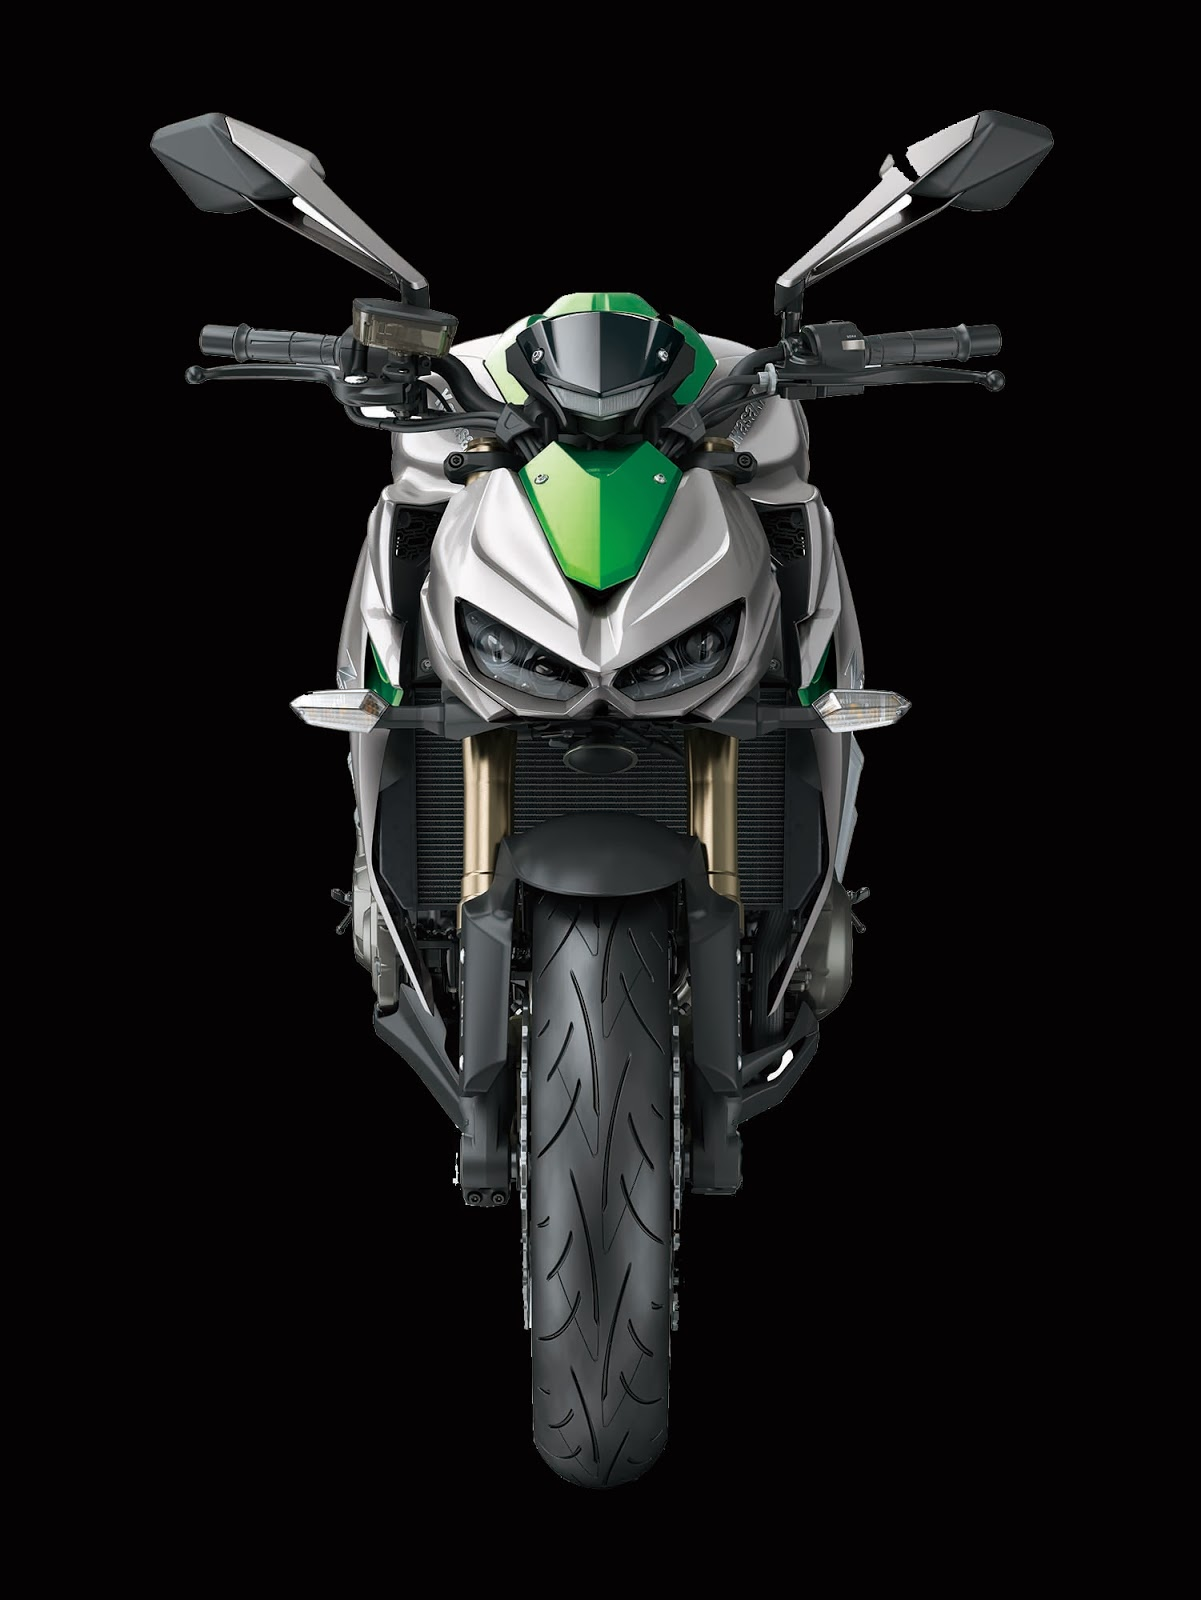 Tags Kawasaki Z1000 India Price In Mileage Review Maximum Speed